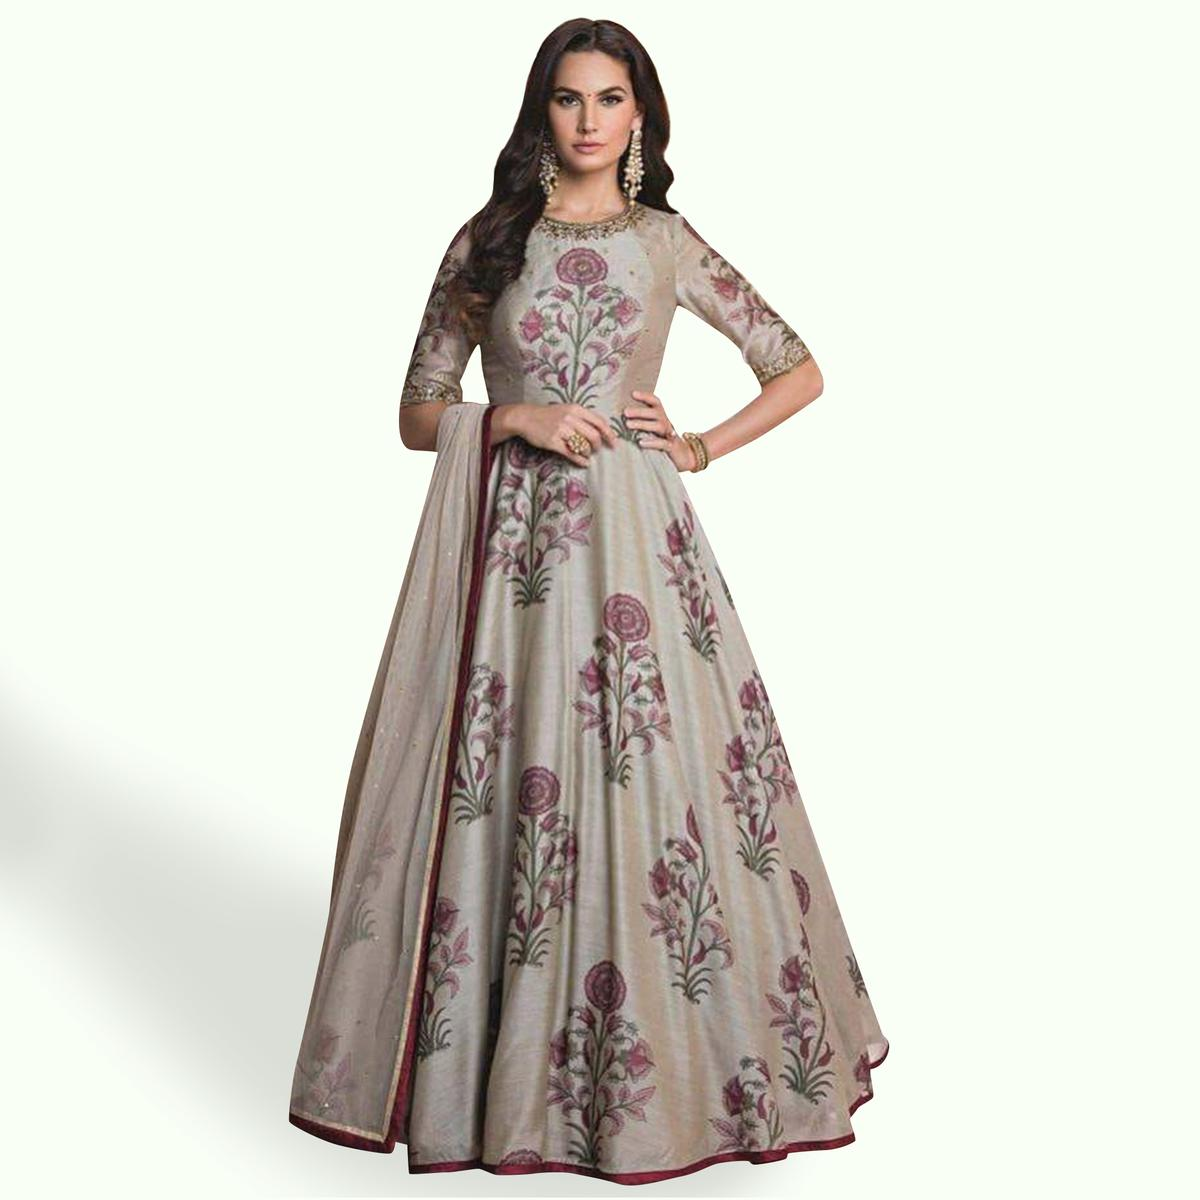 88fc52cae1 Buy Ravishing Light Grey Colored Party Wear Digital Printed Banglori Silk  Gown Online India, Best Prices, Reviews - Peachmode